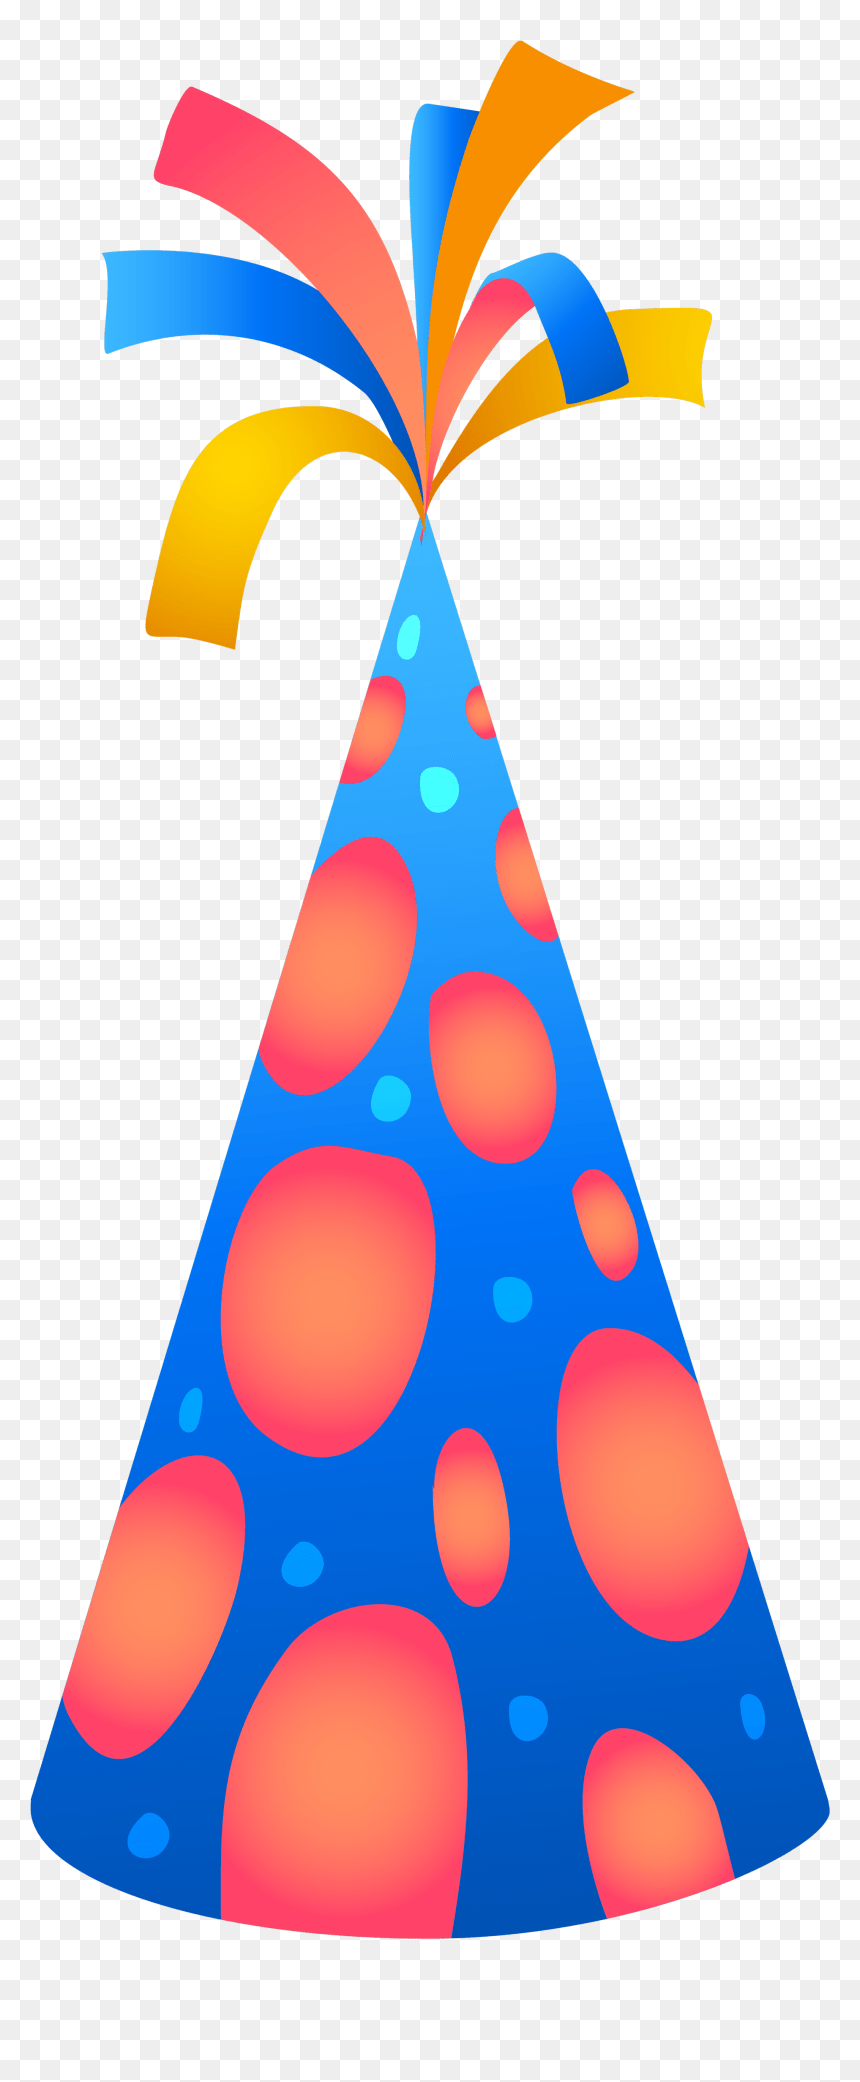 Transparent Background Birthday Party Hat Clipart Png Png Download Vhv